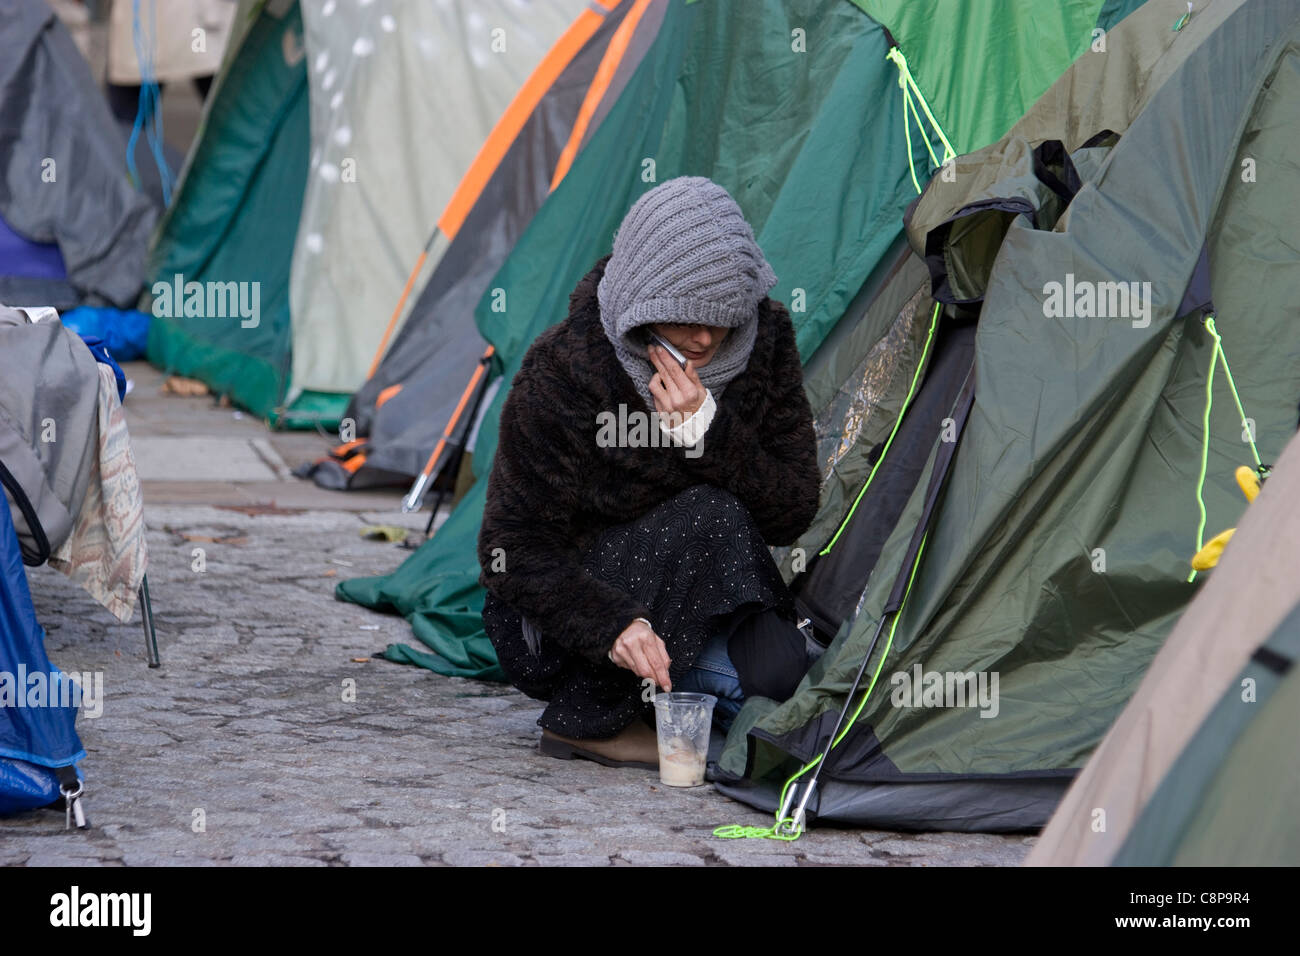 camping protestor at st pauls cathedral, occupy london protest with tents - Stock Image